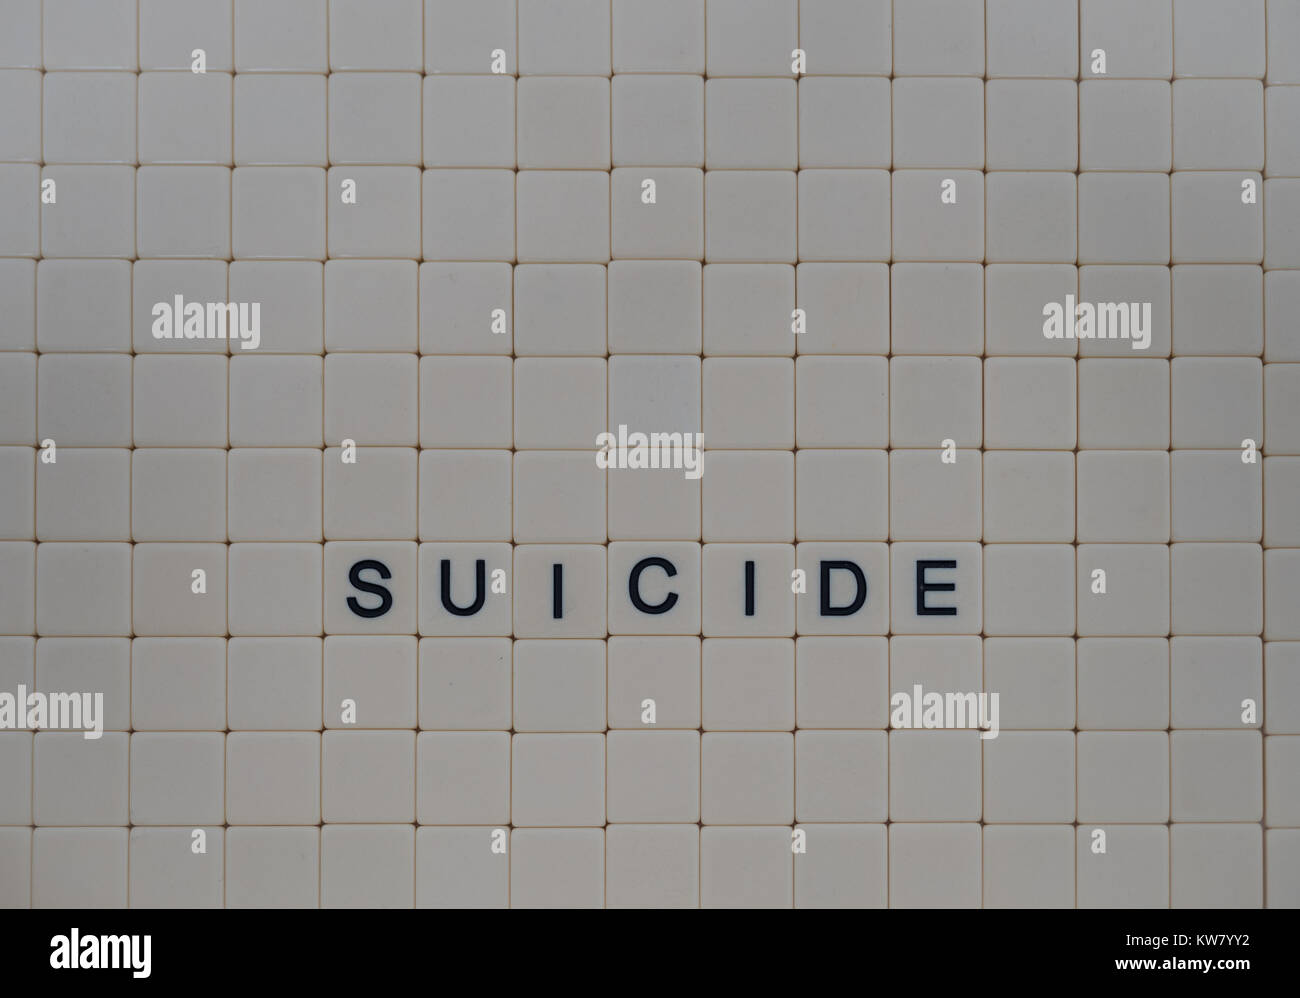 Tan tiles with black capital letters spelling Suicide set in a background of small tan tiles.  Image has copy space. - Stock Image